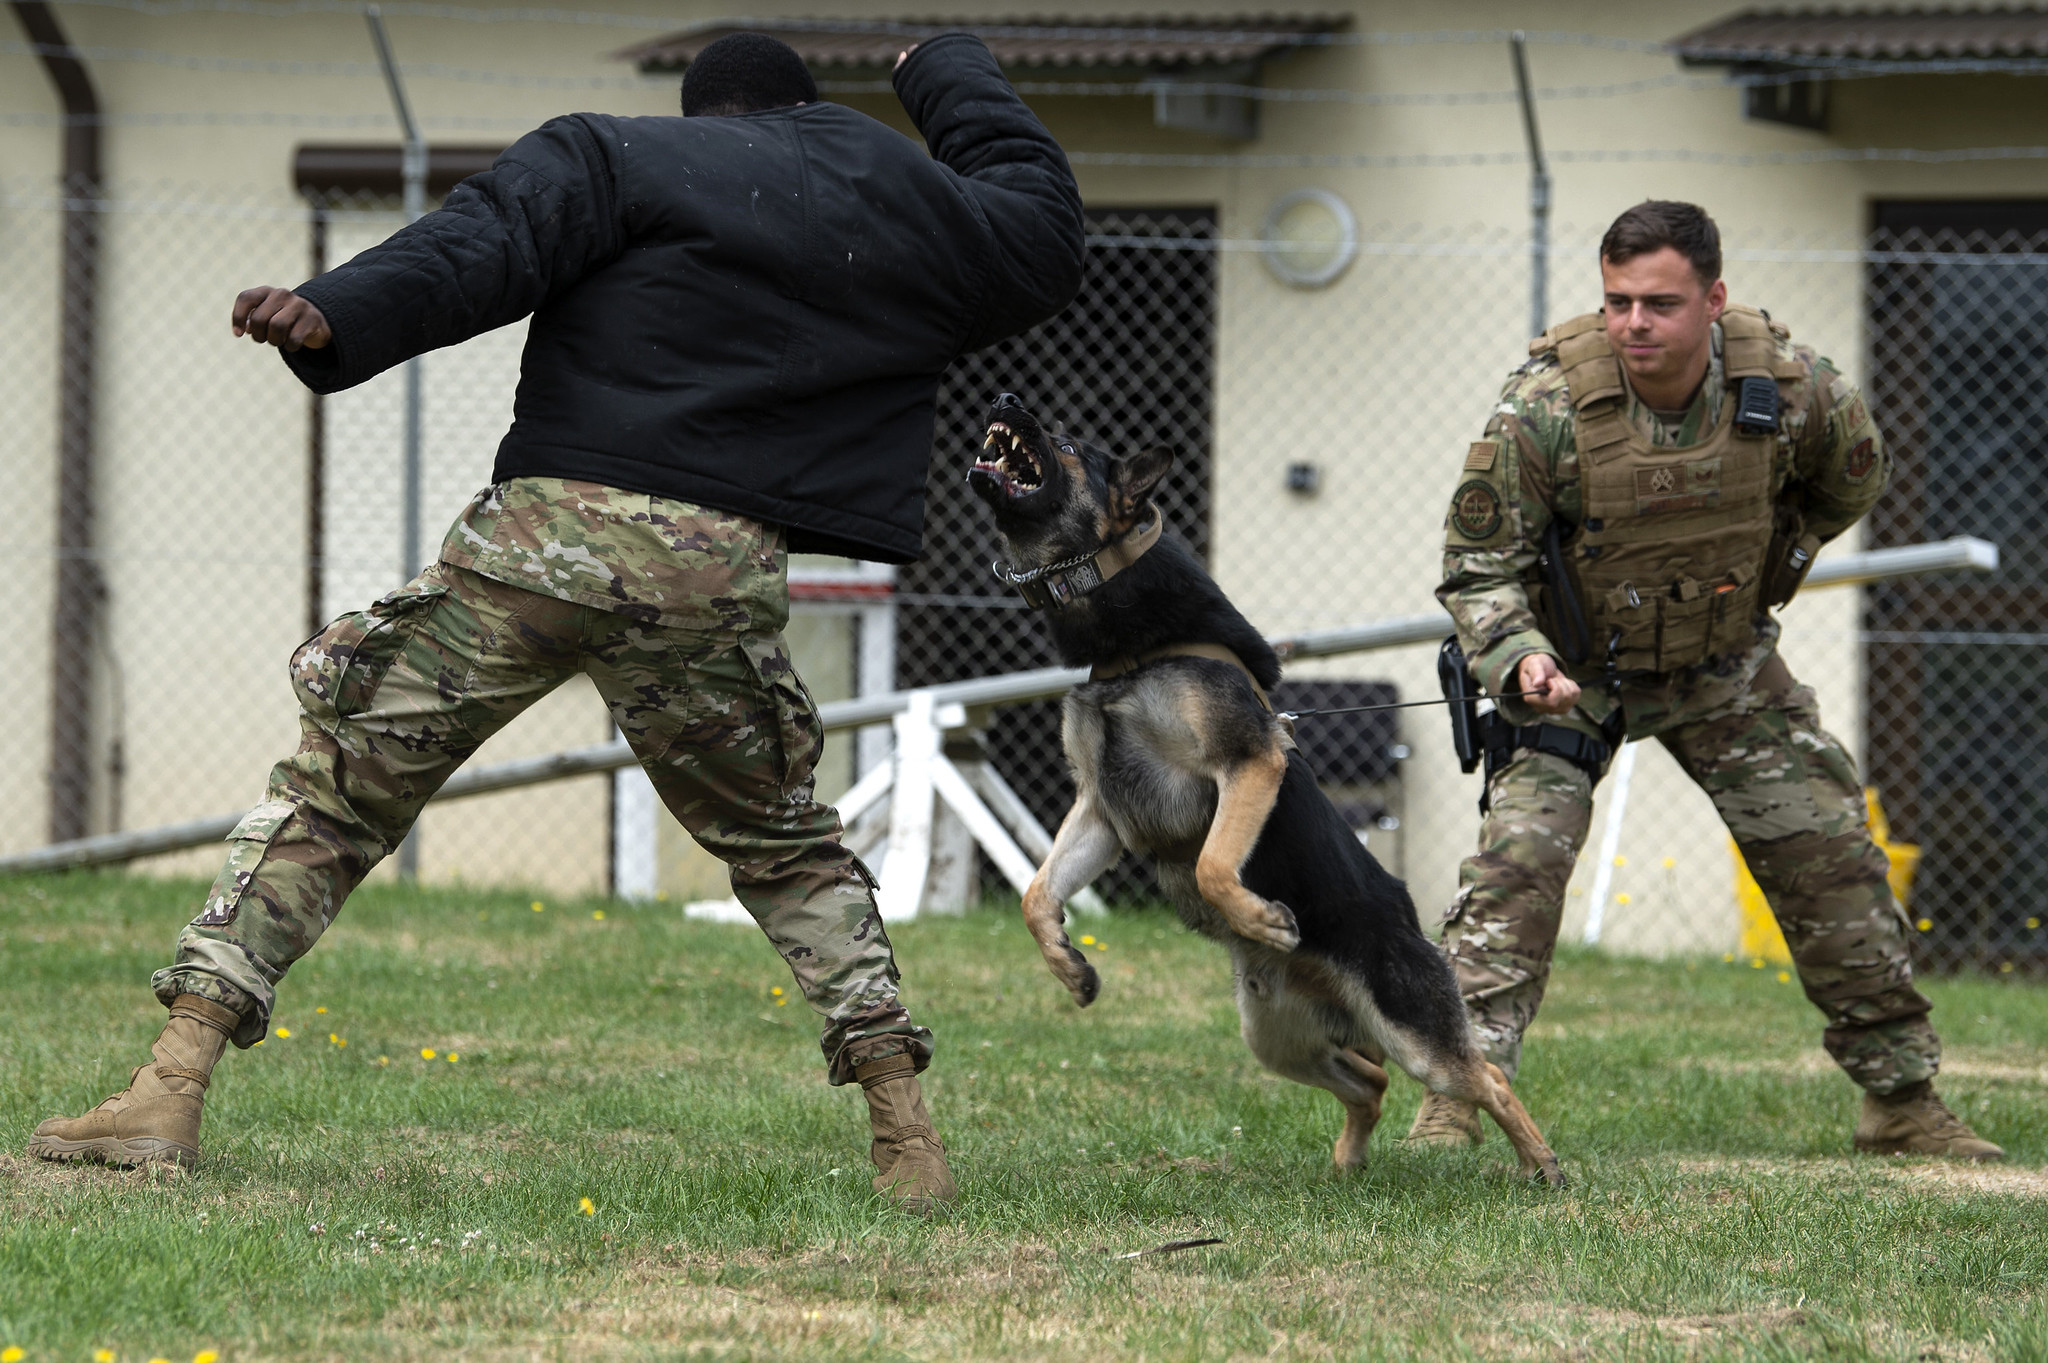 Air Force Senior Airman Victor Henderson, left, and Staff Sgt. Kyle Strobele, right, conduct training with Mike, a military working dog, at Spangdahlem Air Base, Germany, Aug. 1, 2019. (Airman 1st Class Valerie Seelye/Air Force)